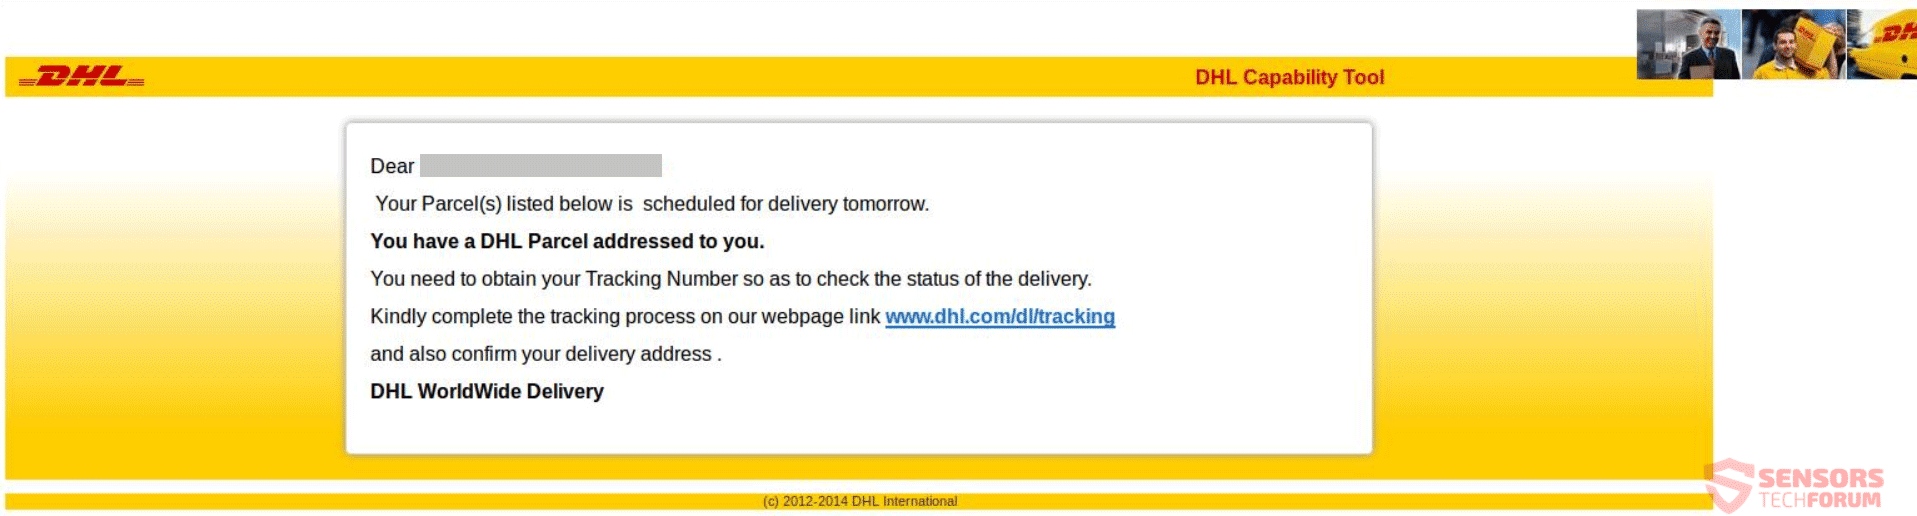 dhl phishing example